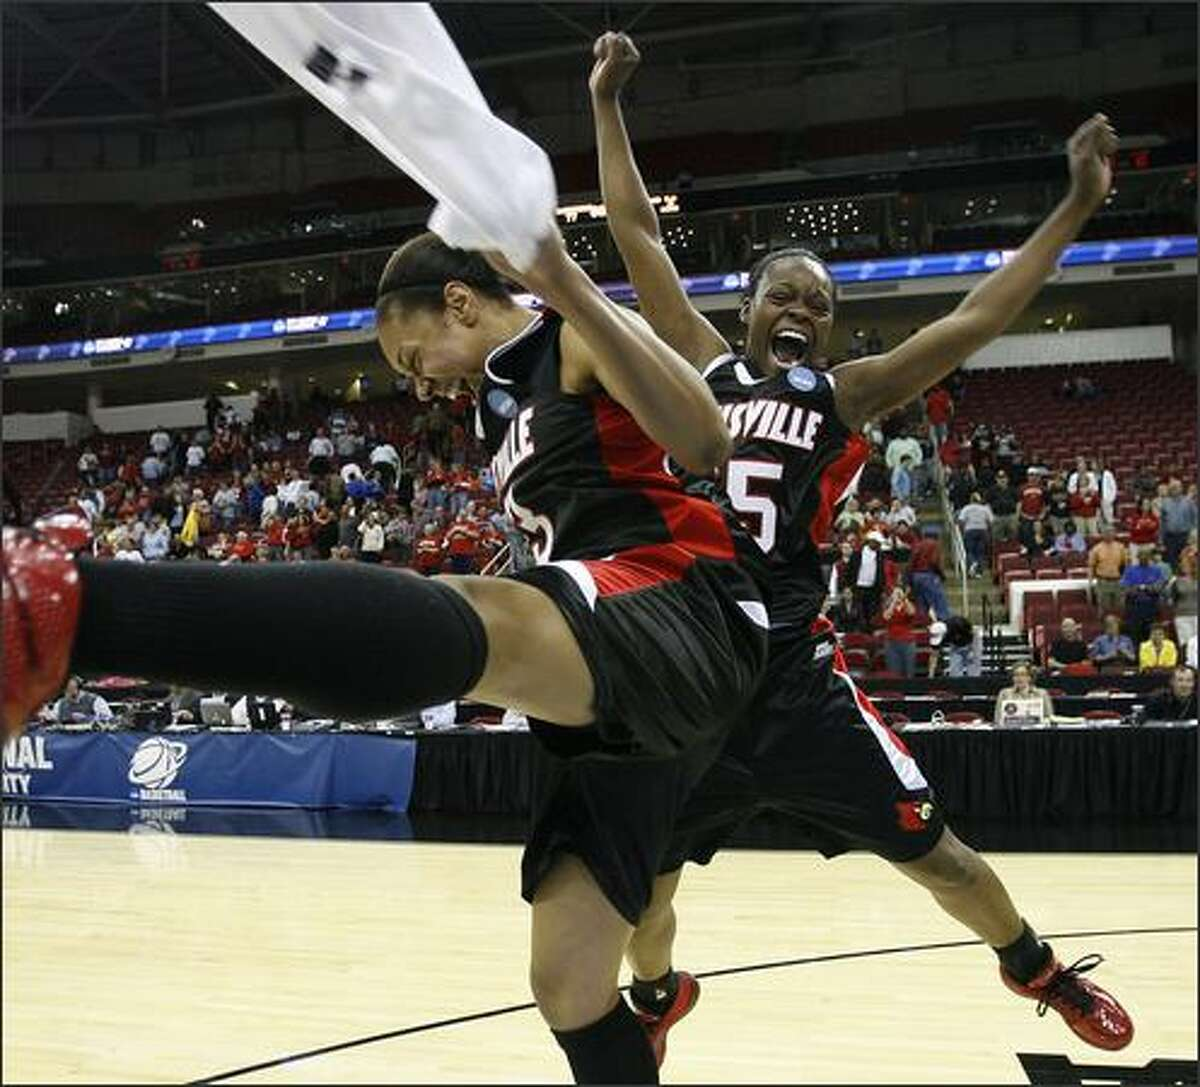 University of Louisville players Candyce Bingham (L) and Teira Stephen react following Louisville's win over the University of Maryland during their NCAA women's tournament regional final basketball game in Raleigh, North Carolina.